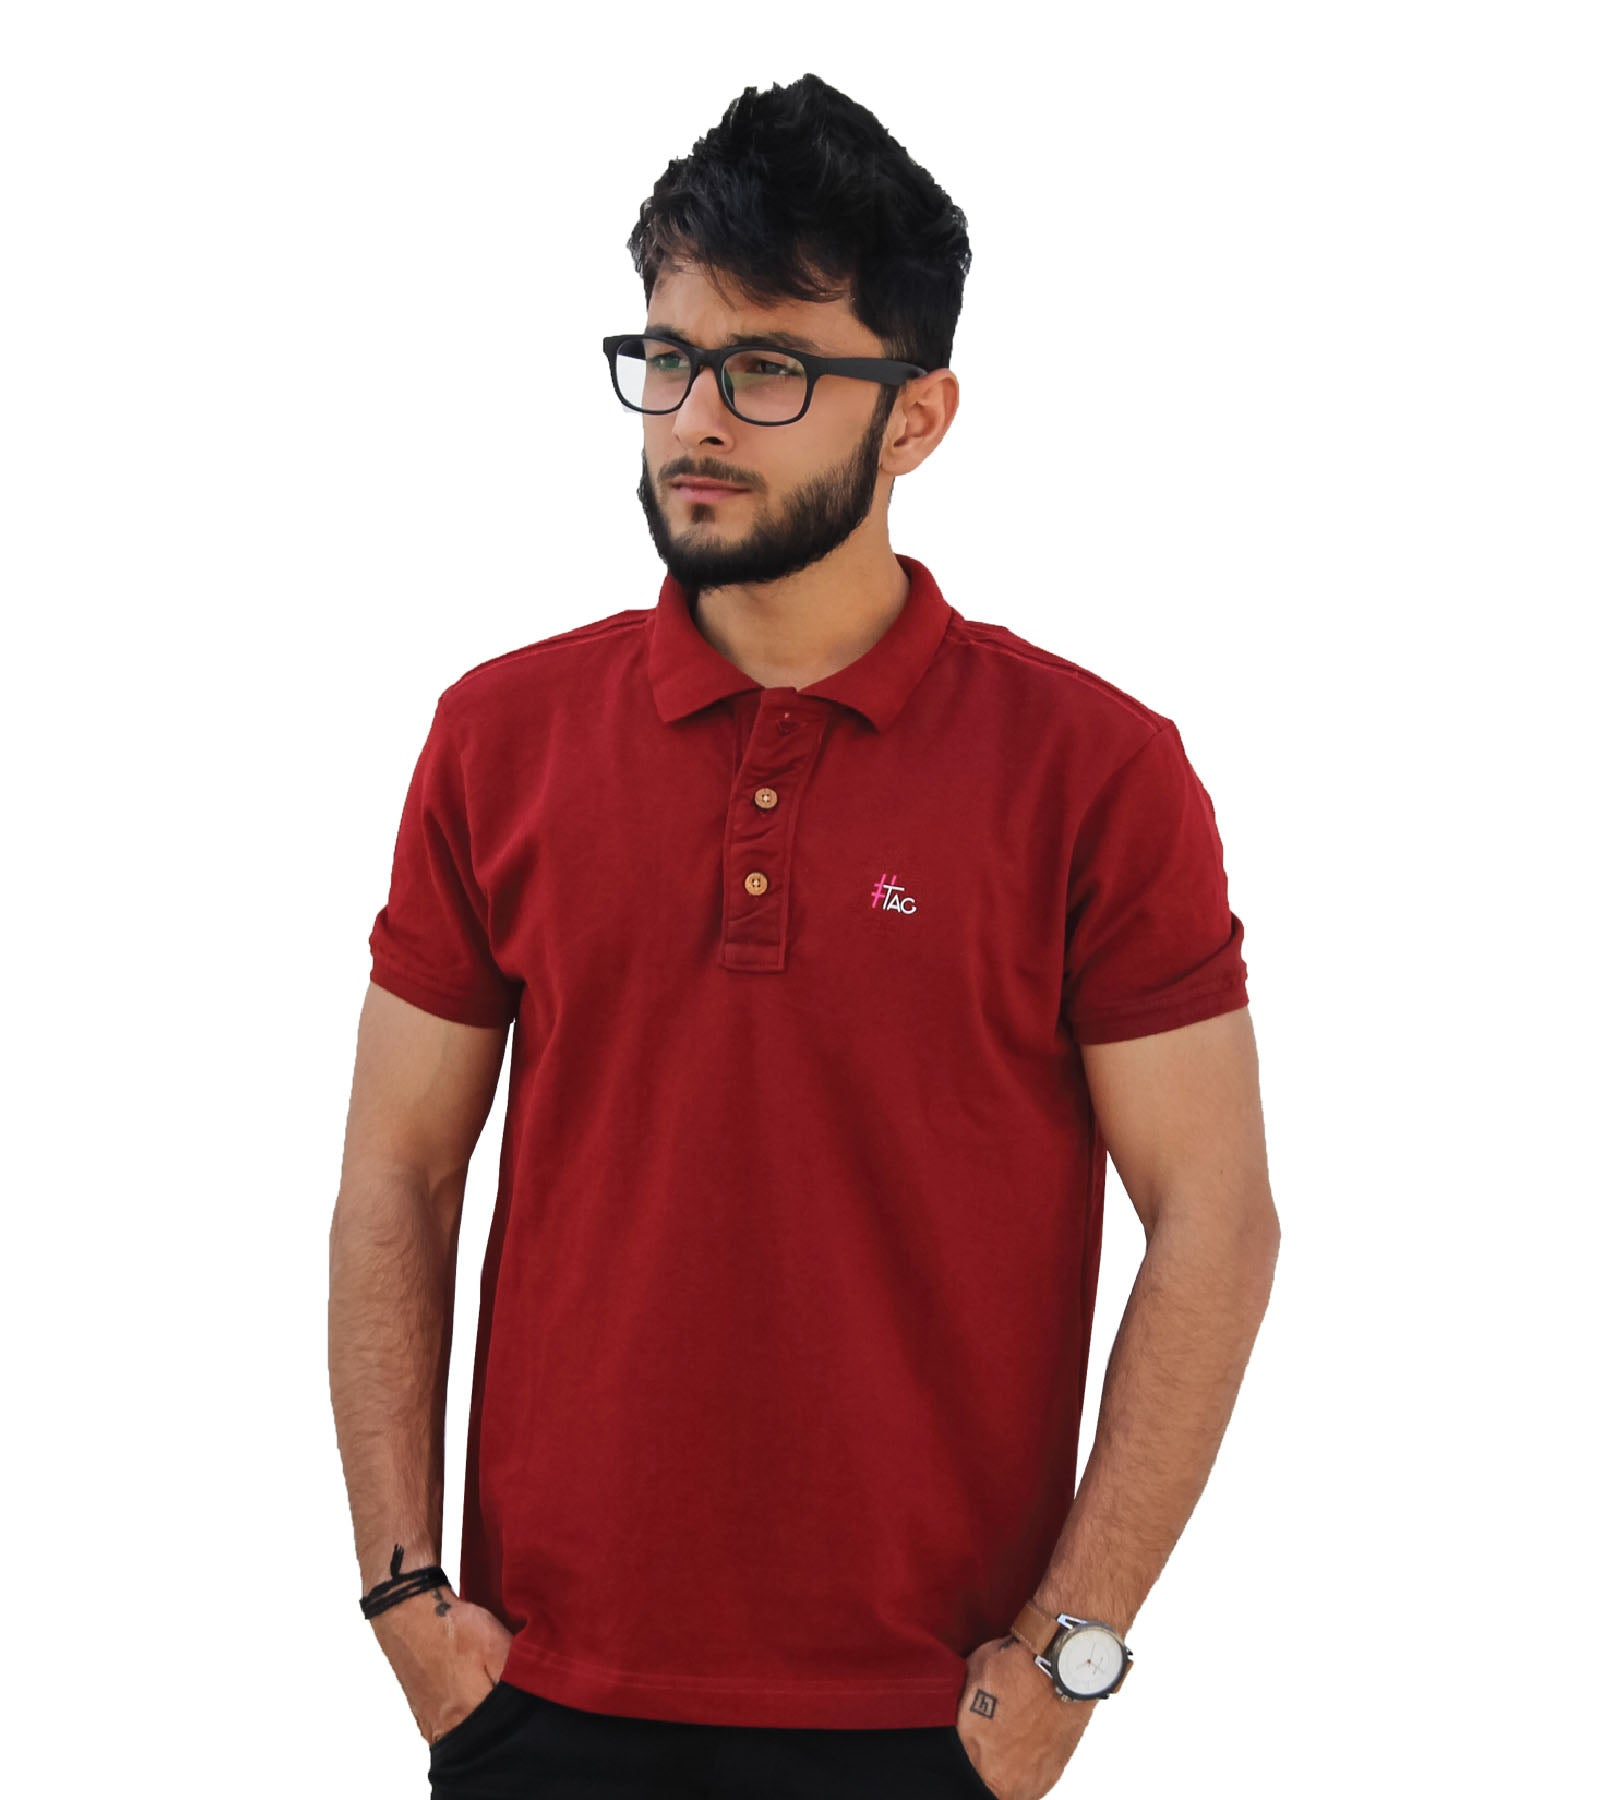 22fb1d79 ... T-shirt with Pocket · Hashtag Cotton Polo Tshirts for Men ...